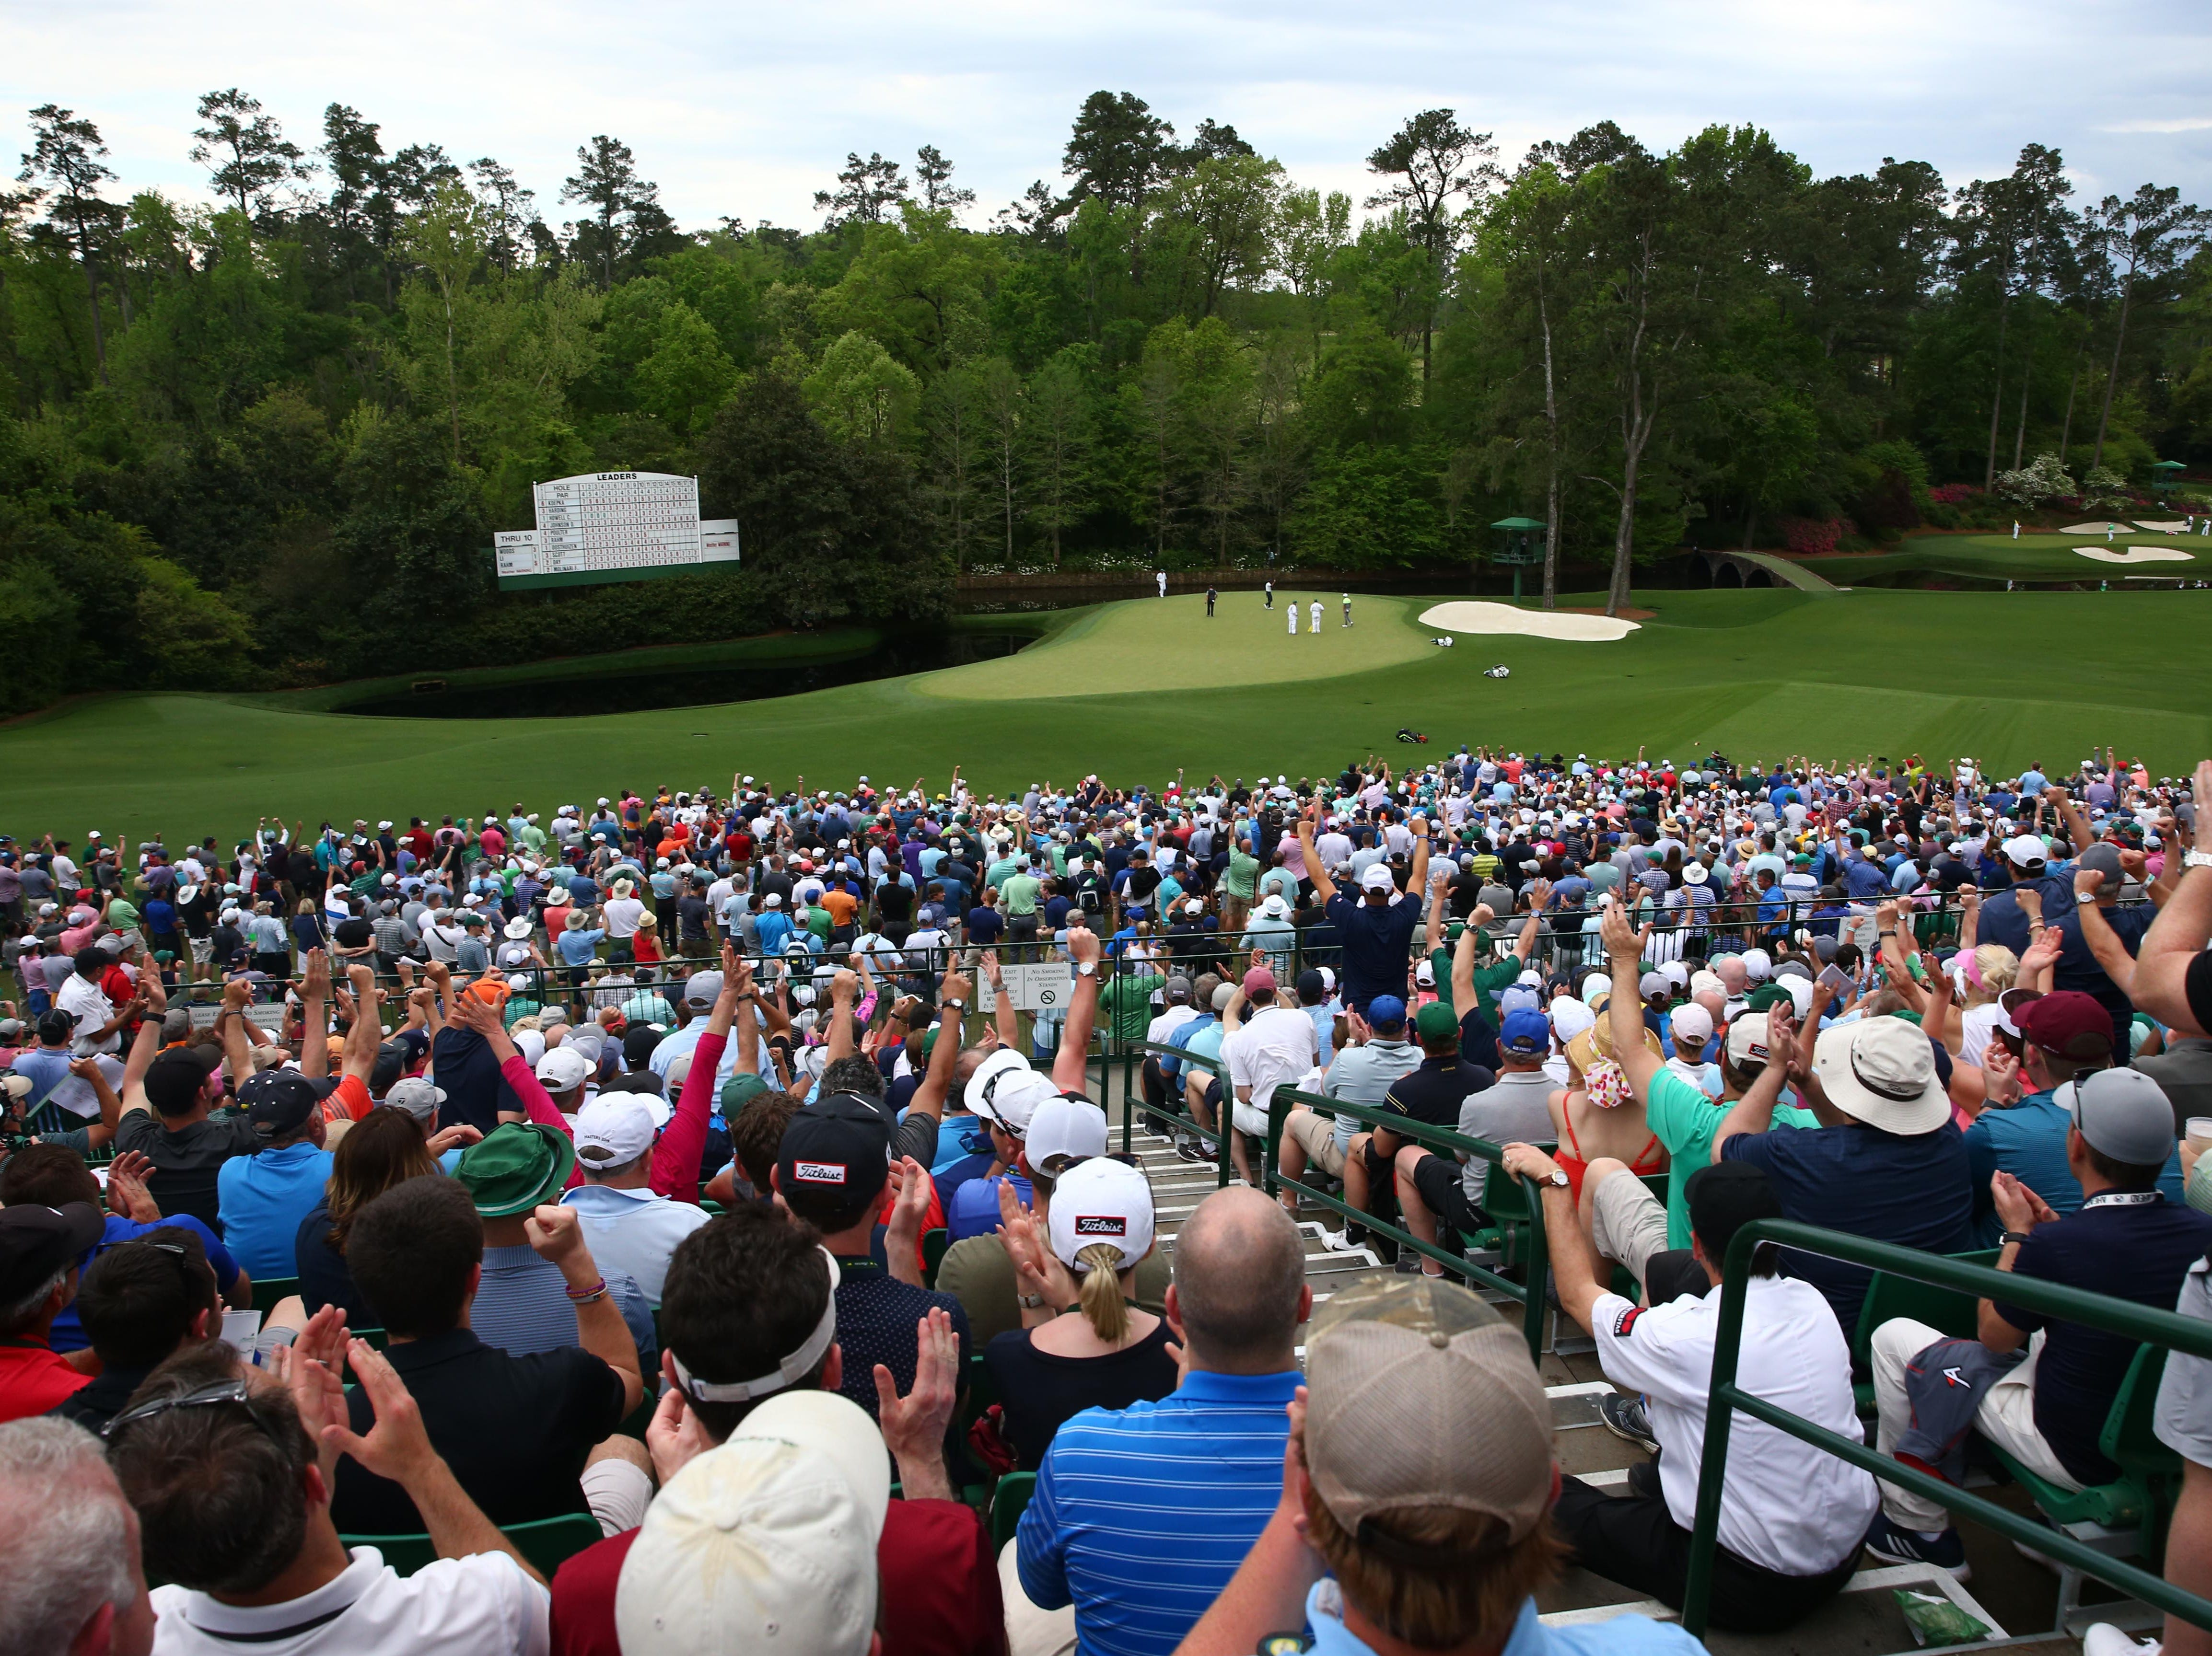 Apr 12, 2019; Augusta, GA, USA; The crowd reacts to a birdie by Tiger Woods on the 11th green during the second round of The Masters golf tournament at Augusta National Golf Club. Mandatory Credit: Rob Schumacher-USA TODAY Sports